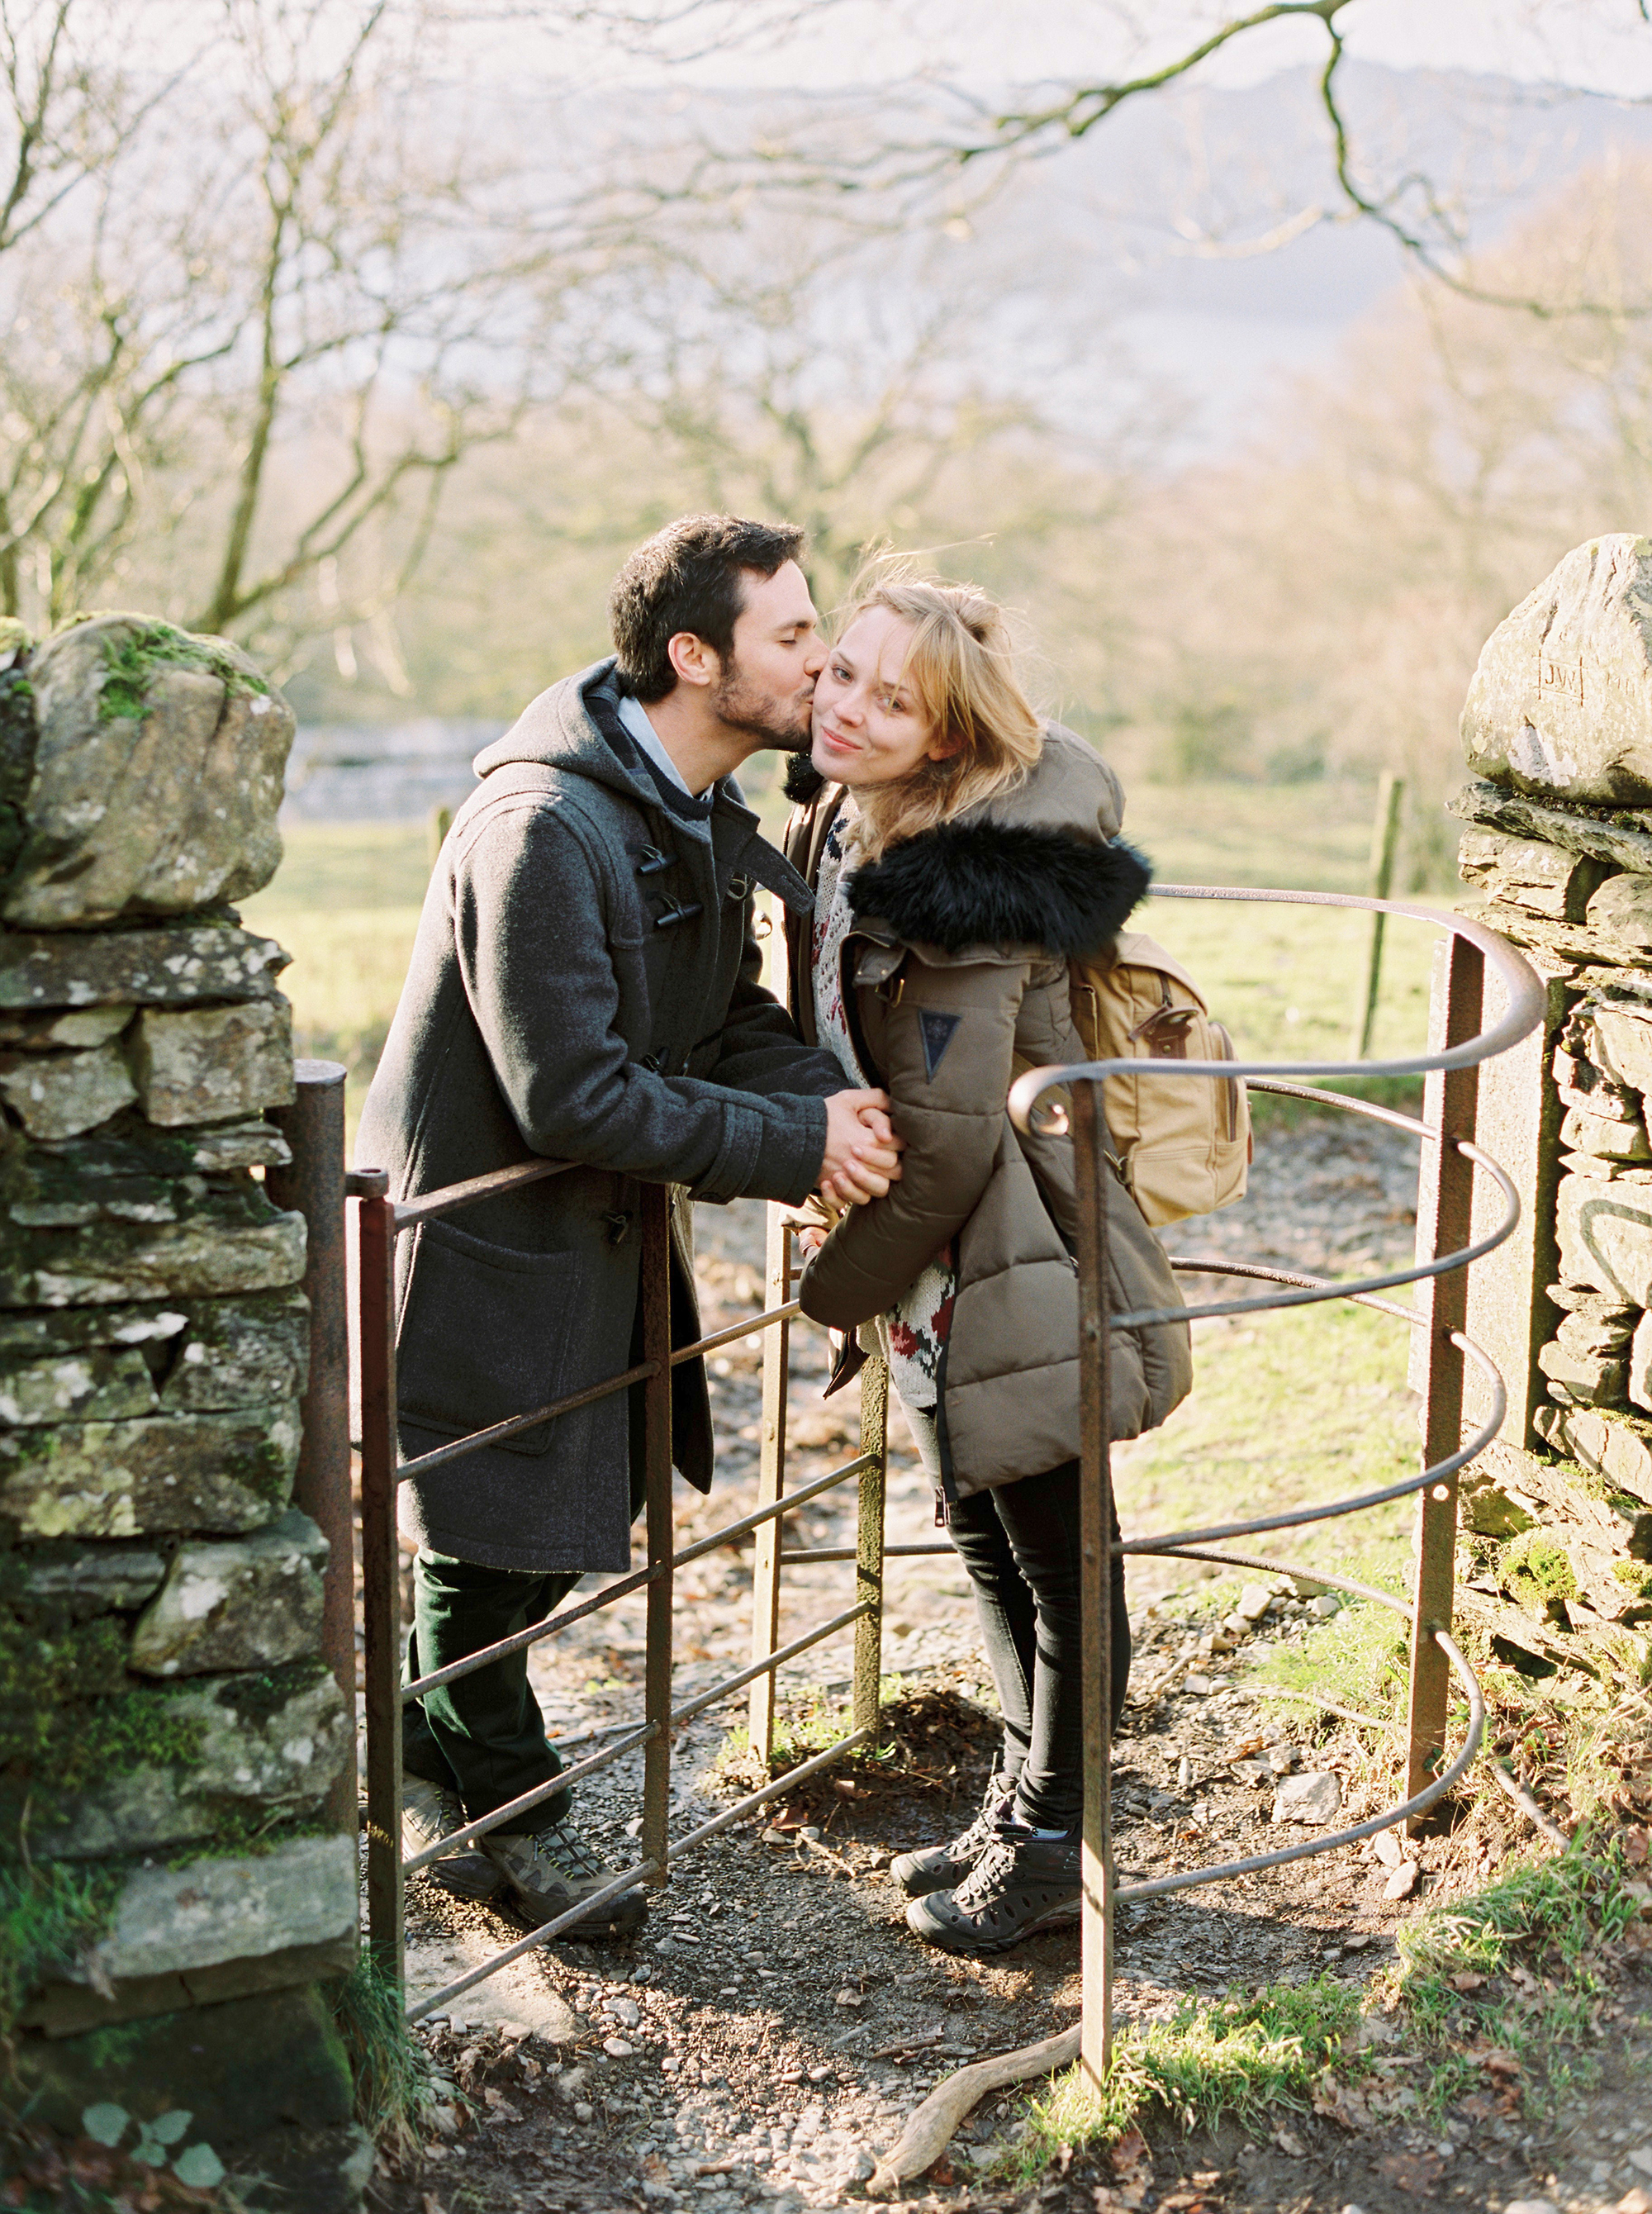 Windermere love shoot - Although not technically an engagement shoot Reuben and Polly did get engaged not long after I took these photos! Coming all the way from Israel I was so happy to spend time with them both taking photos and showing them the sights of the Lake District.